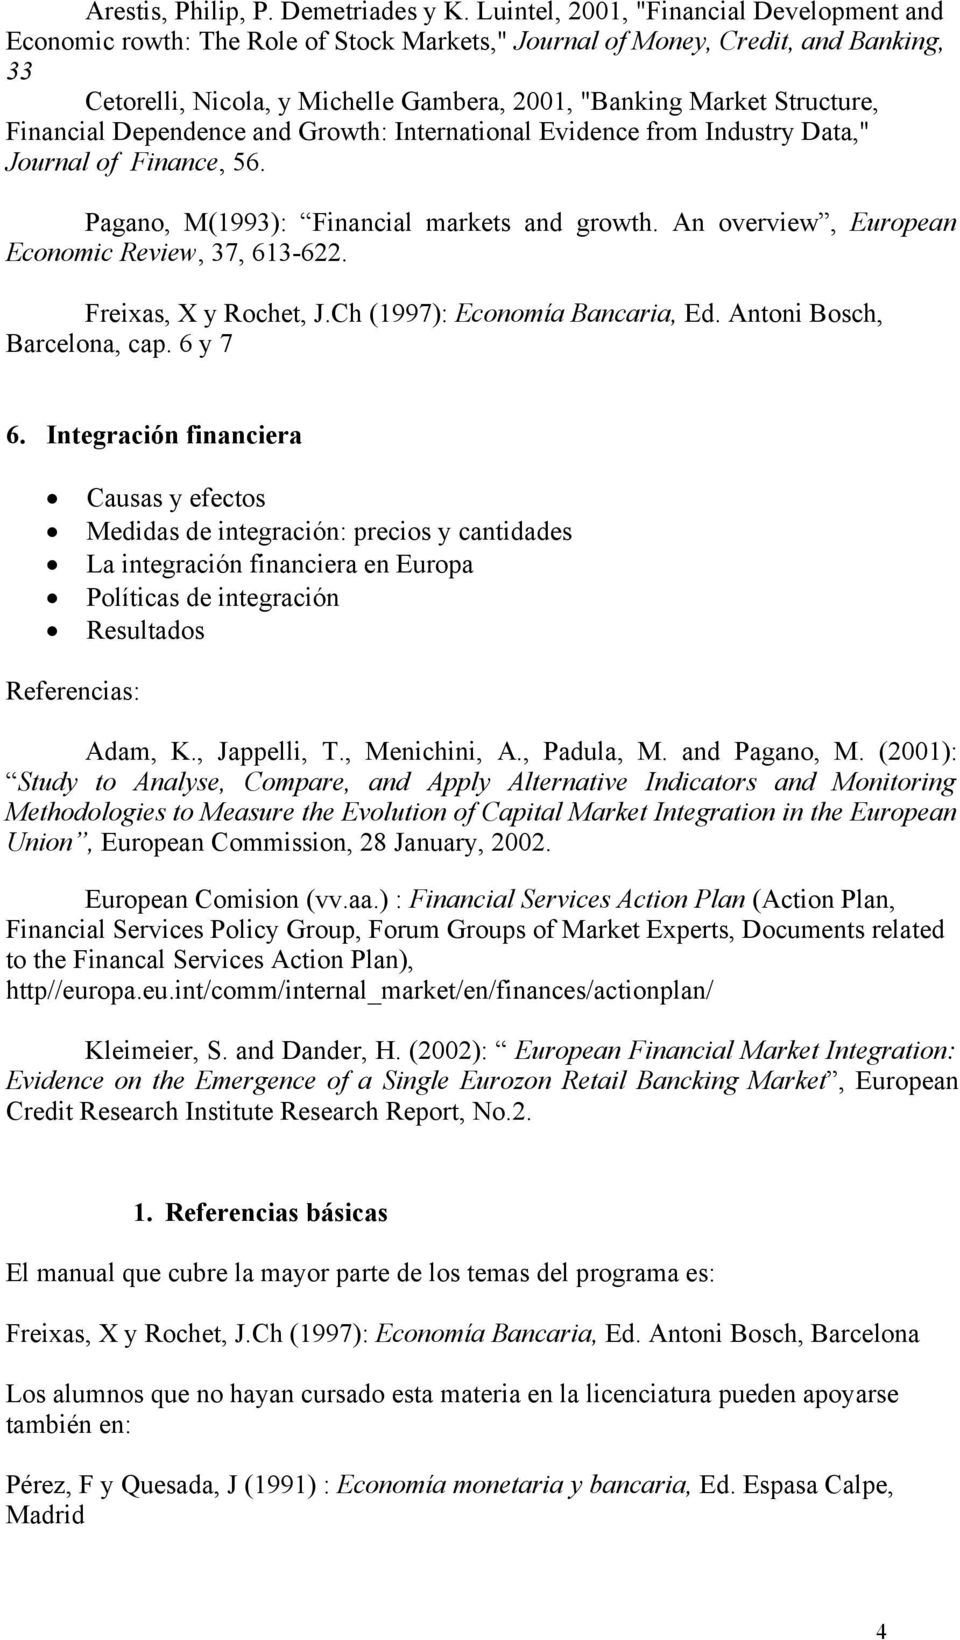 "Financial Dependence and Growth: International Evidence from Industry Data,"" Journal of Finance, 56. Pagano, M(1993): Financial markets and growth. An overview, European Economic Review, 37, 613-622."